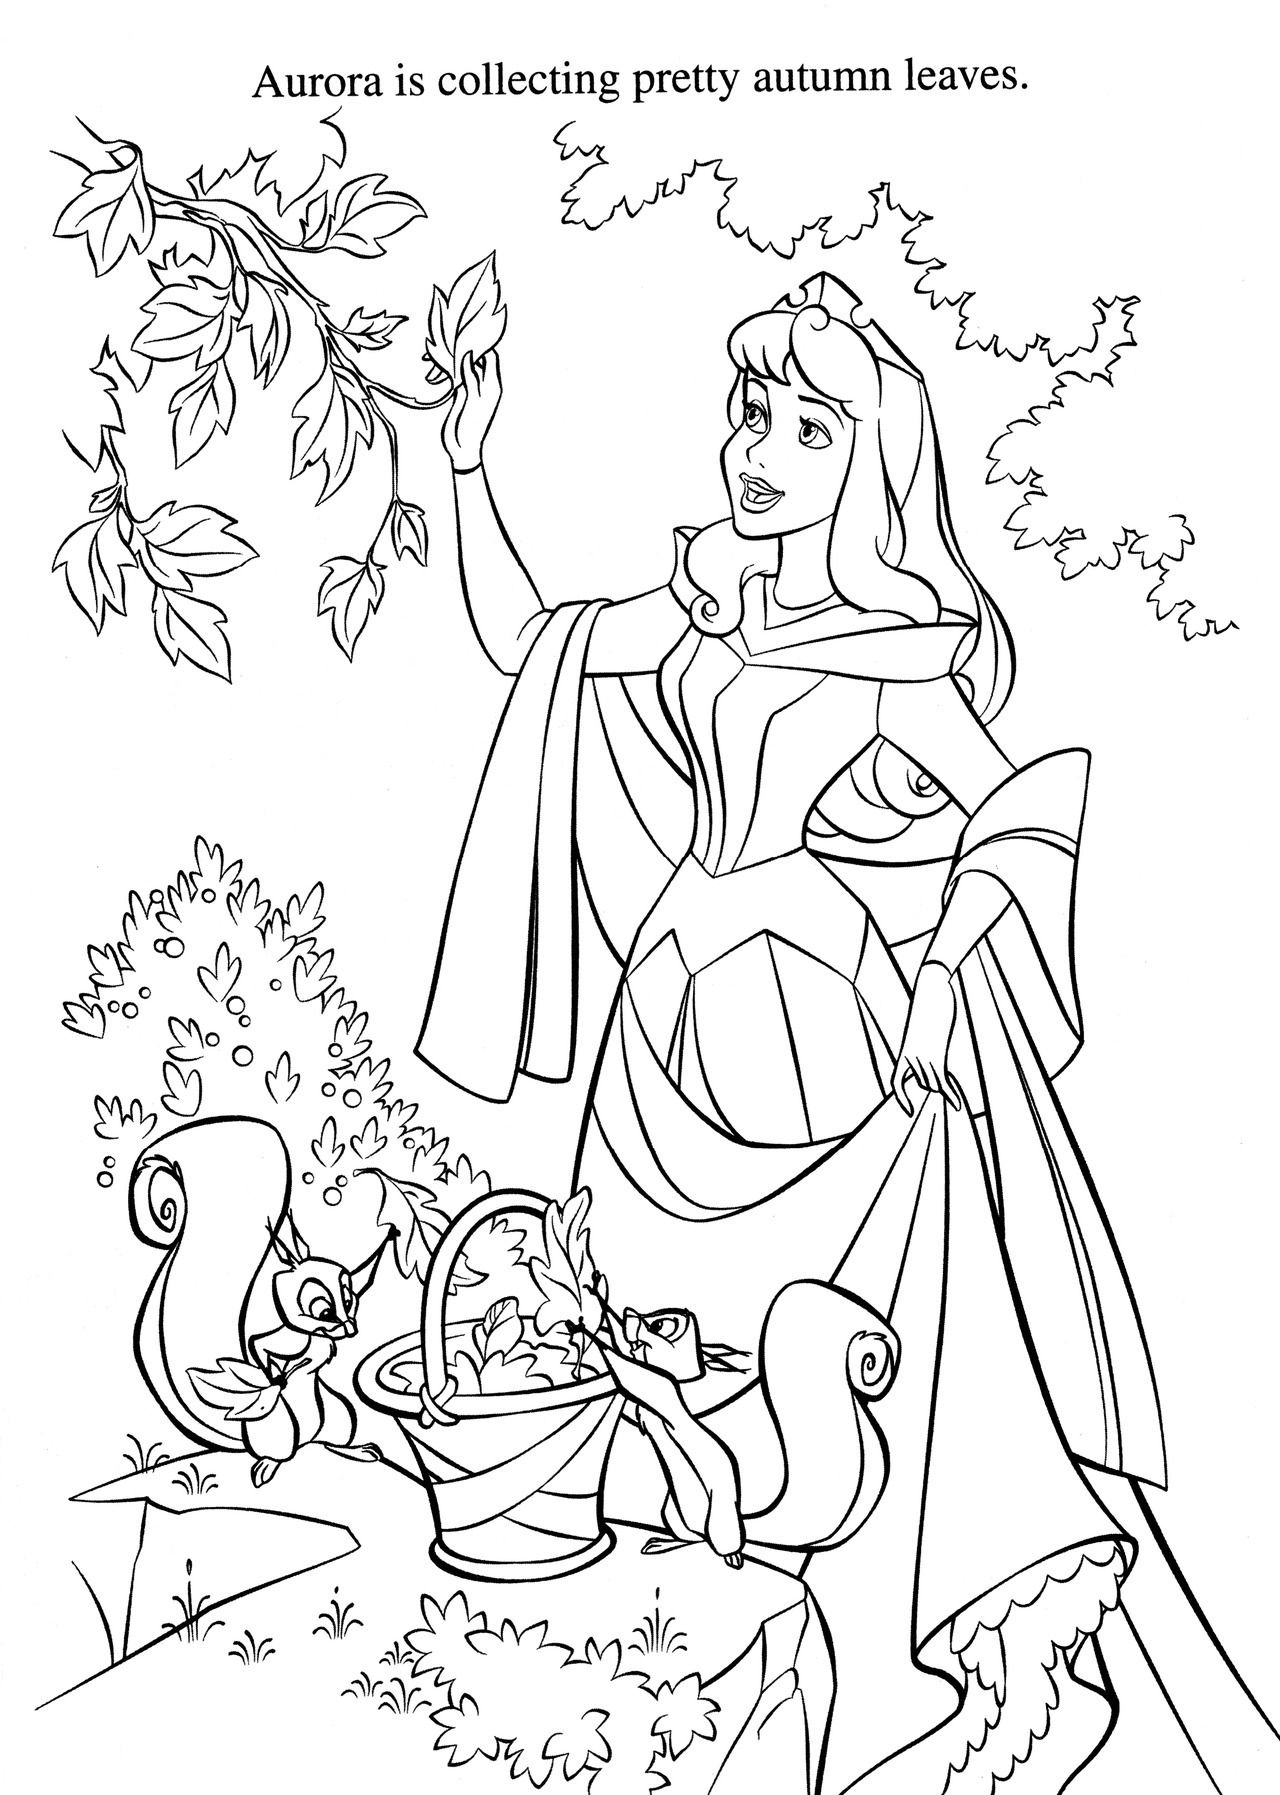 Aurora Collecting Autumn Leaves Disney Coloring Pages Sleeping Beauty Coloring Pages Disney Princess Coloring Pages